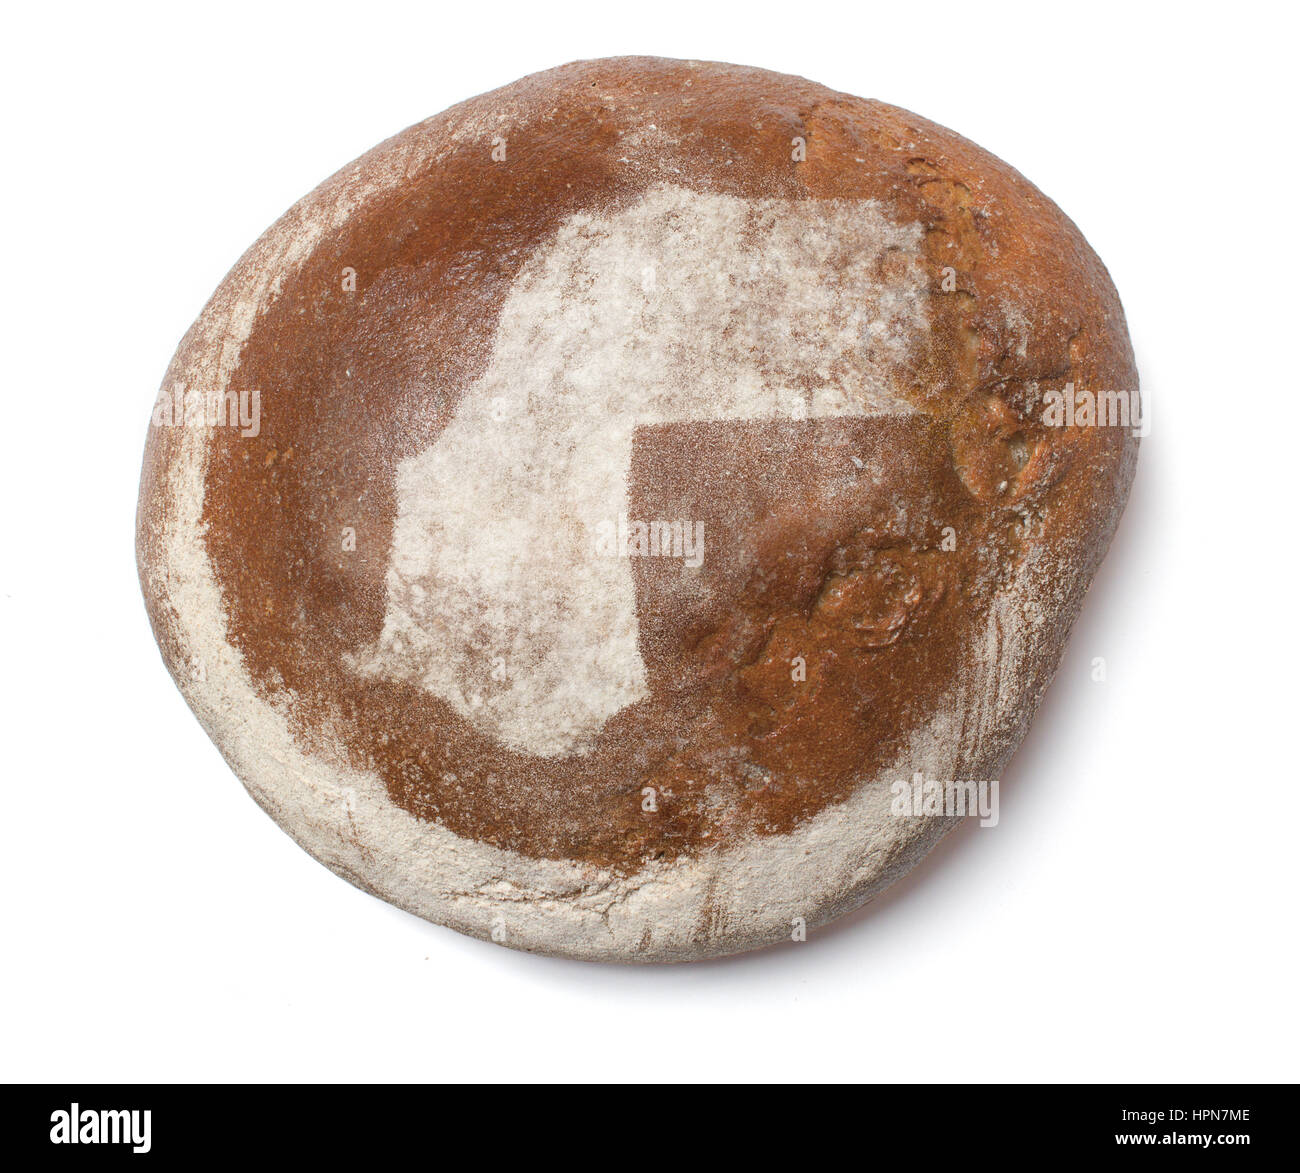 A freshly baked loaf of bread covered with rye flour in the shape of Western Sahara.(series) - Stock Image